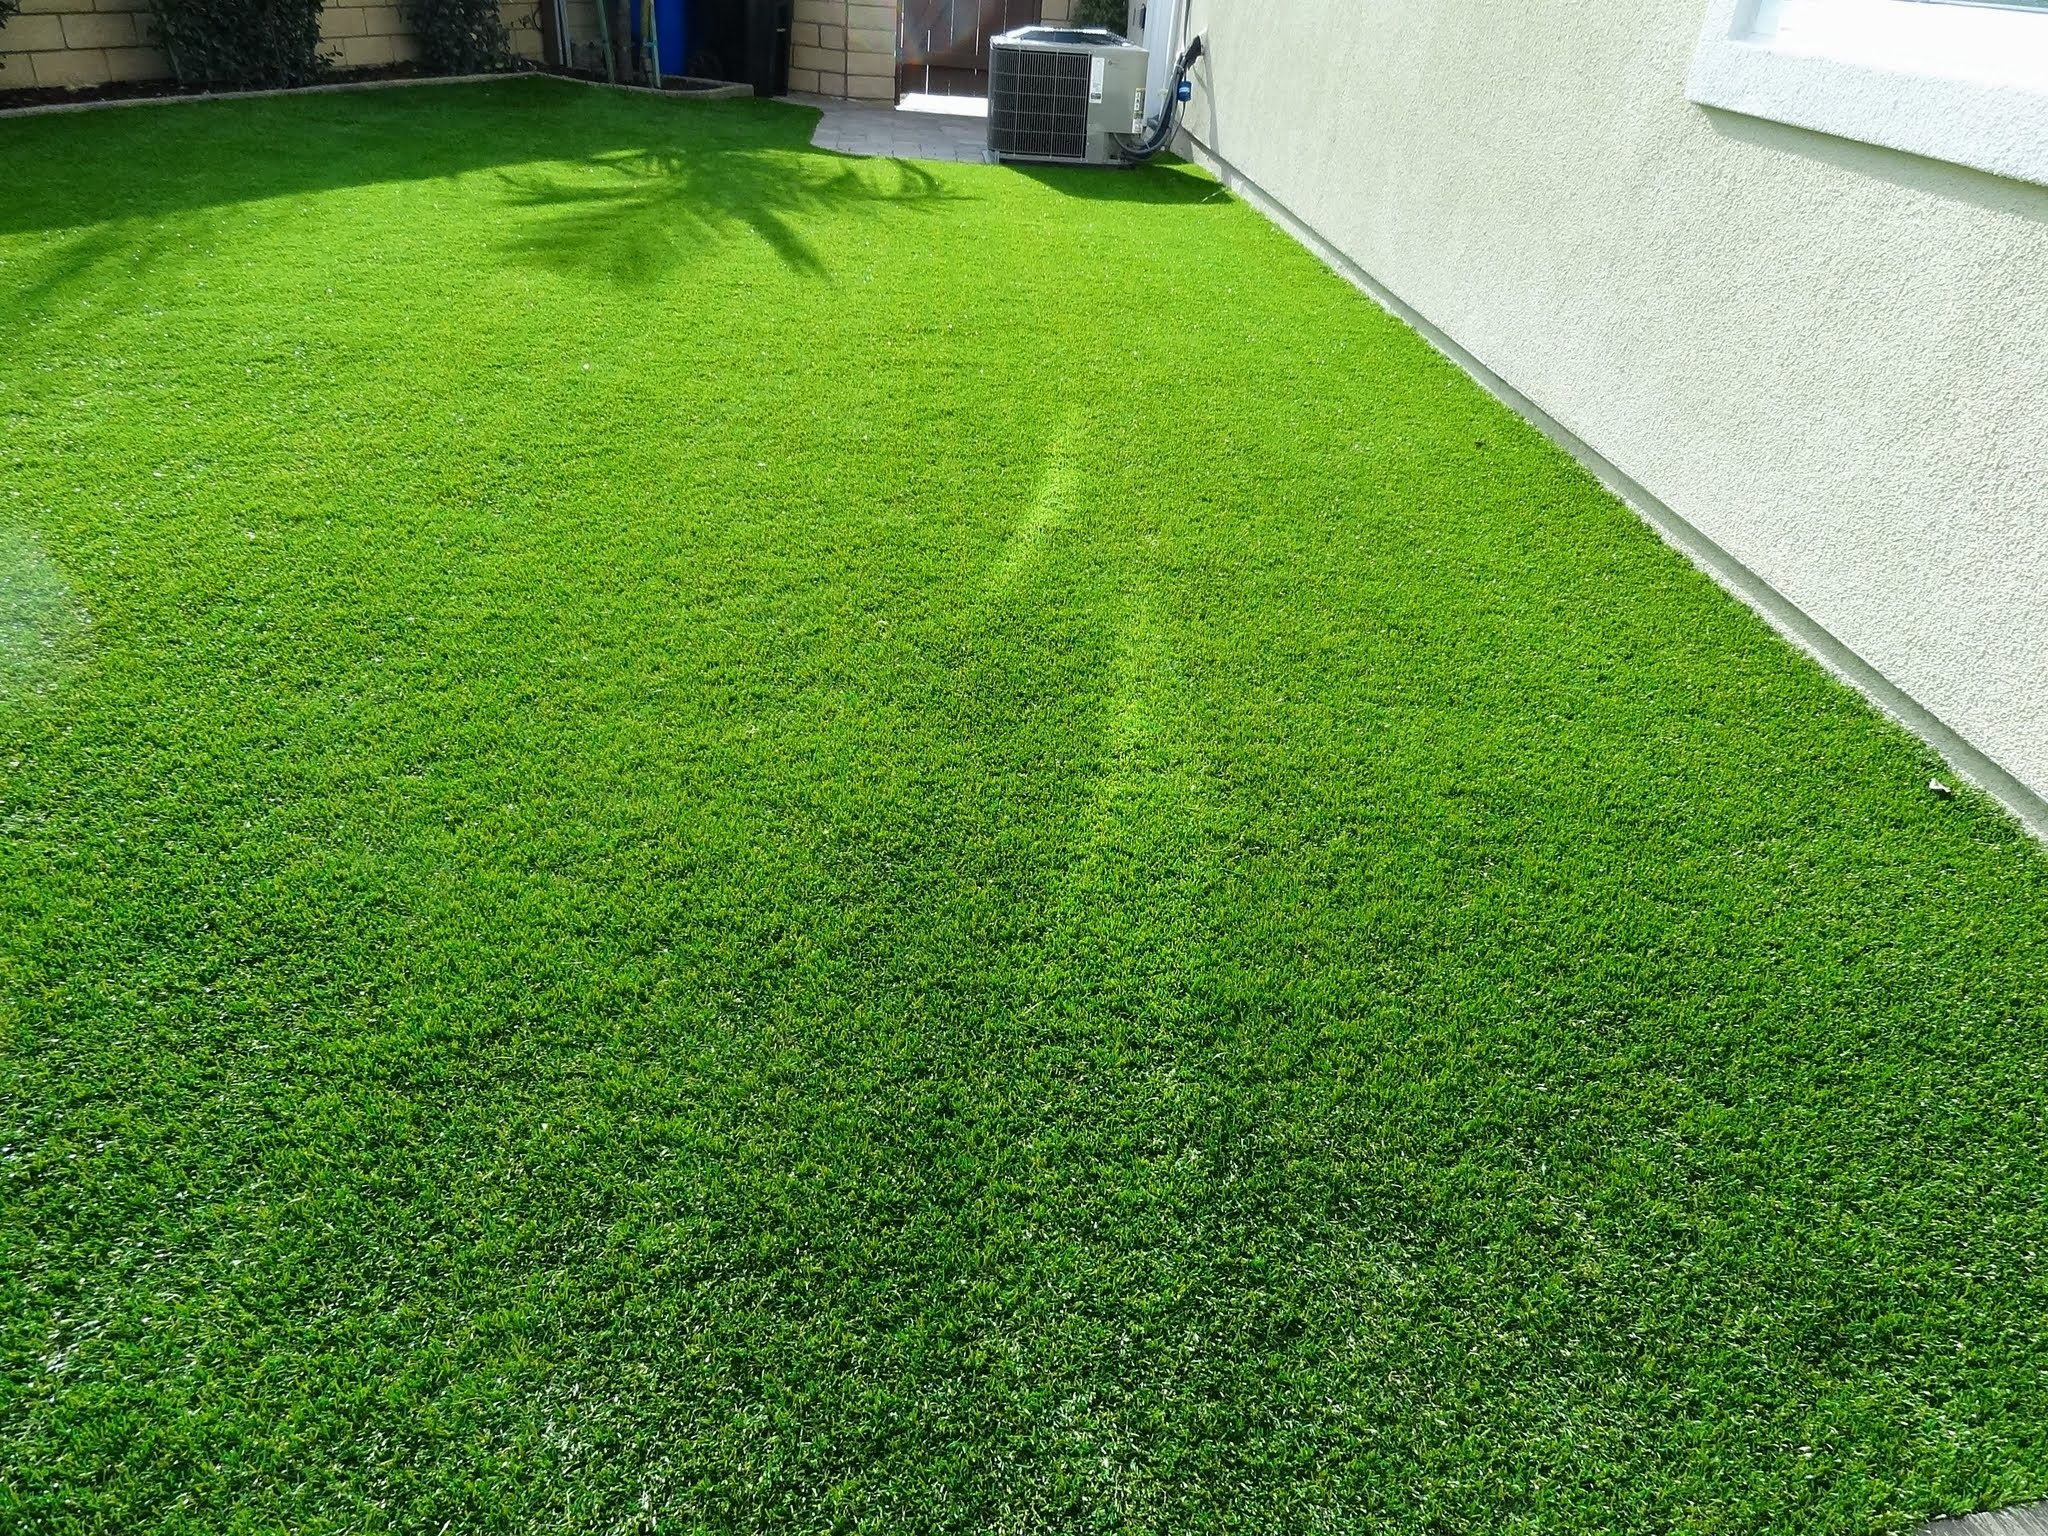 How Is Artificial Grass Comparatively Better Than Natural